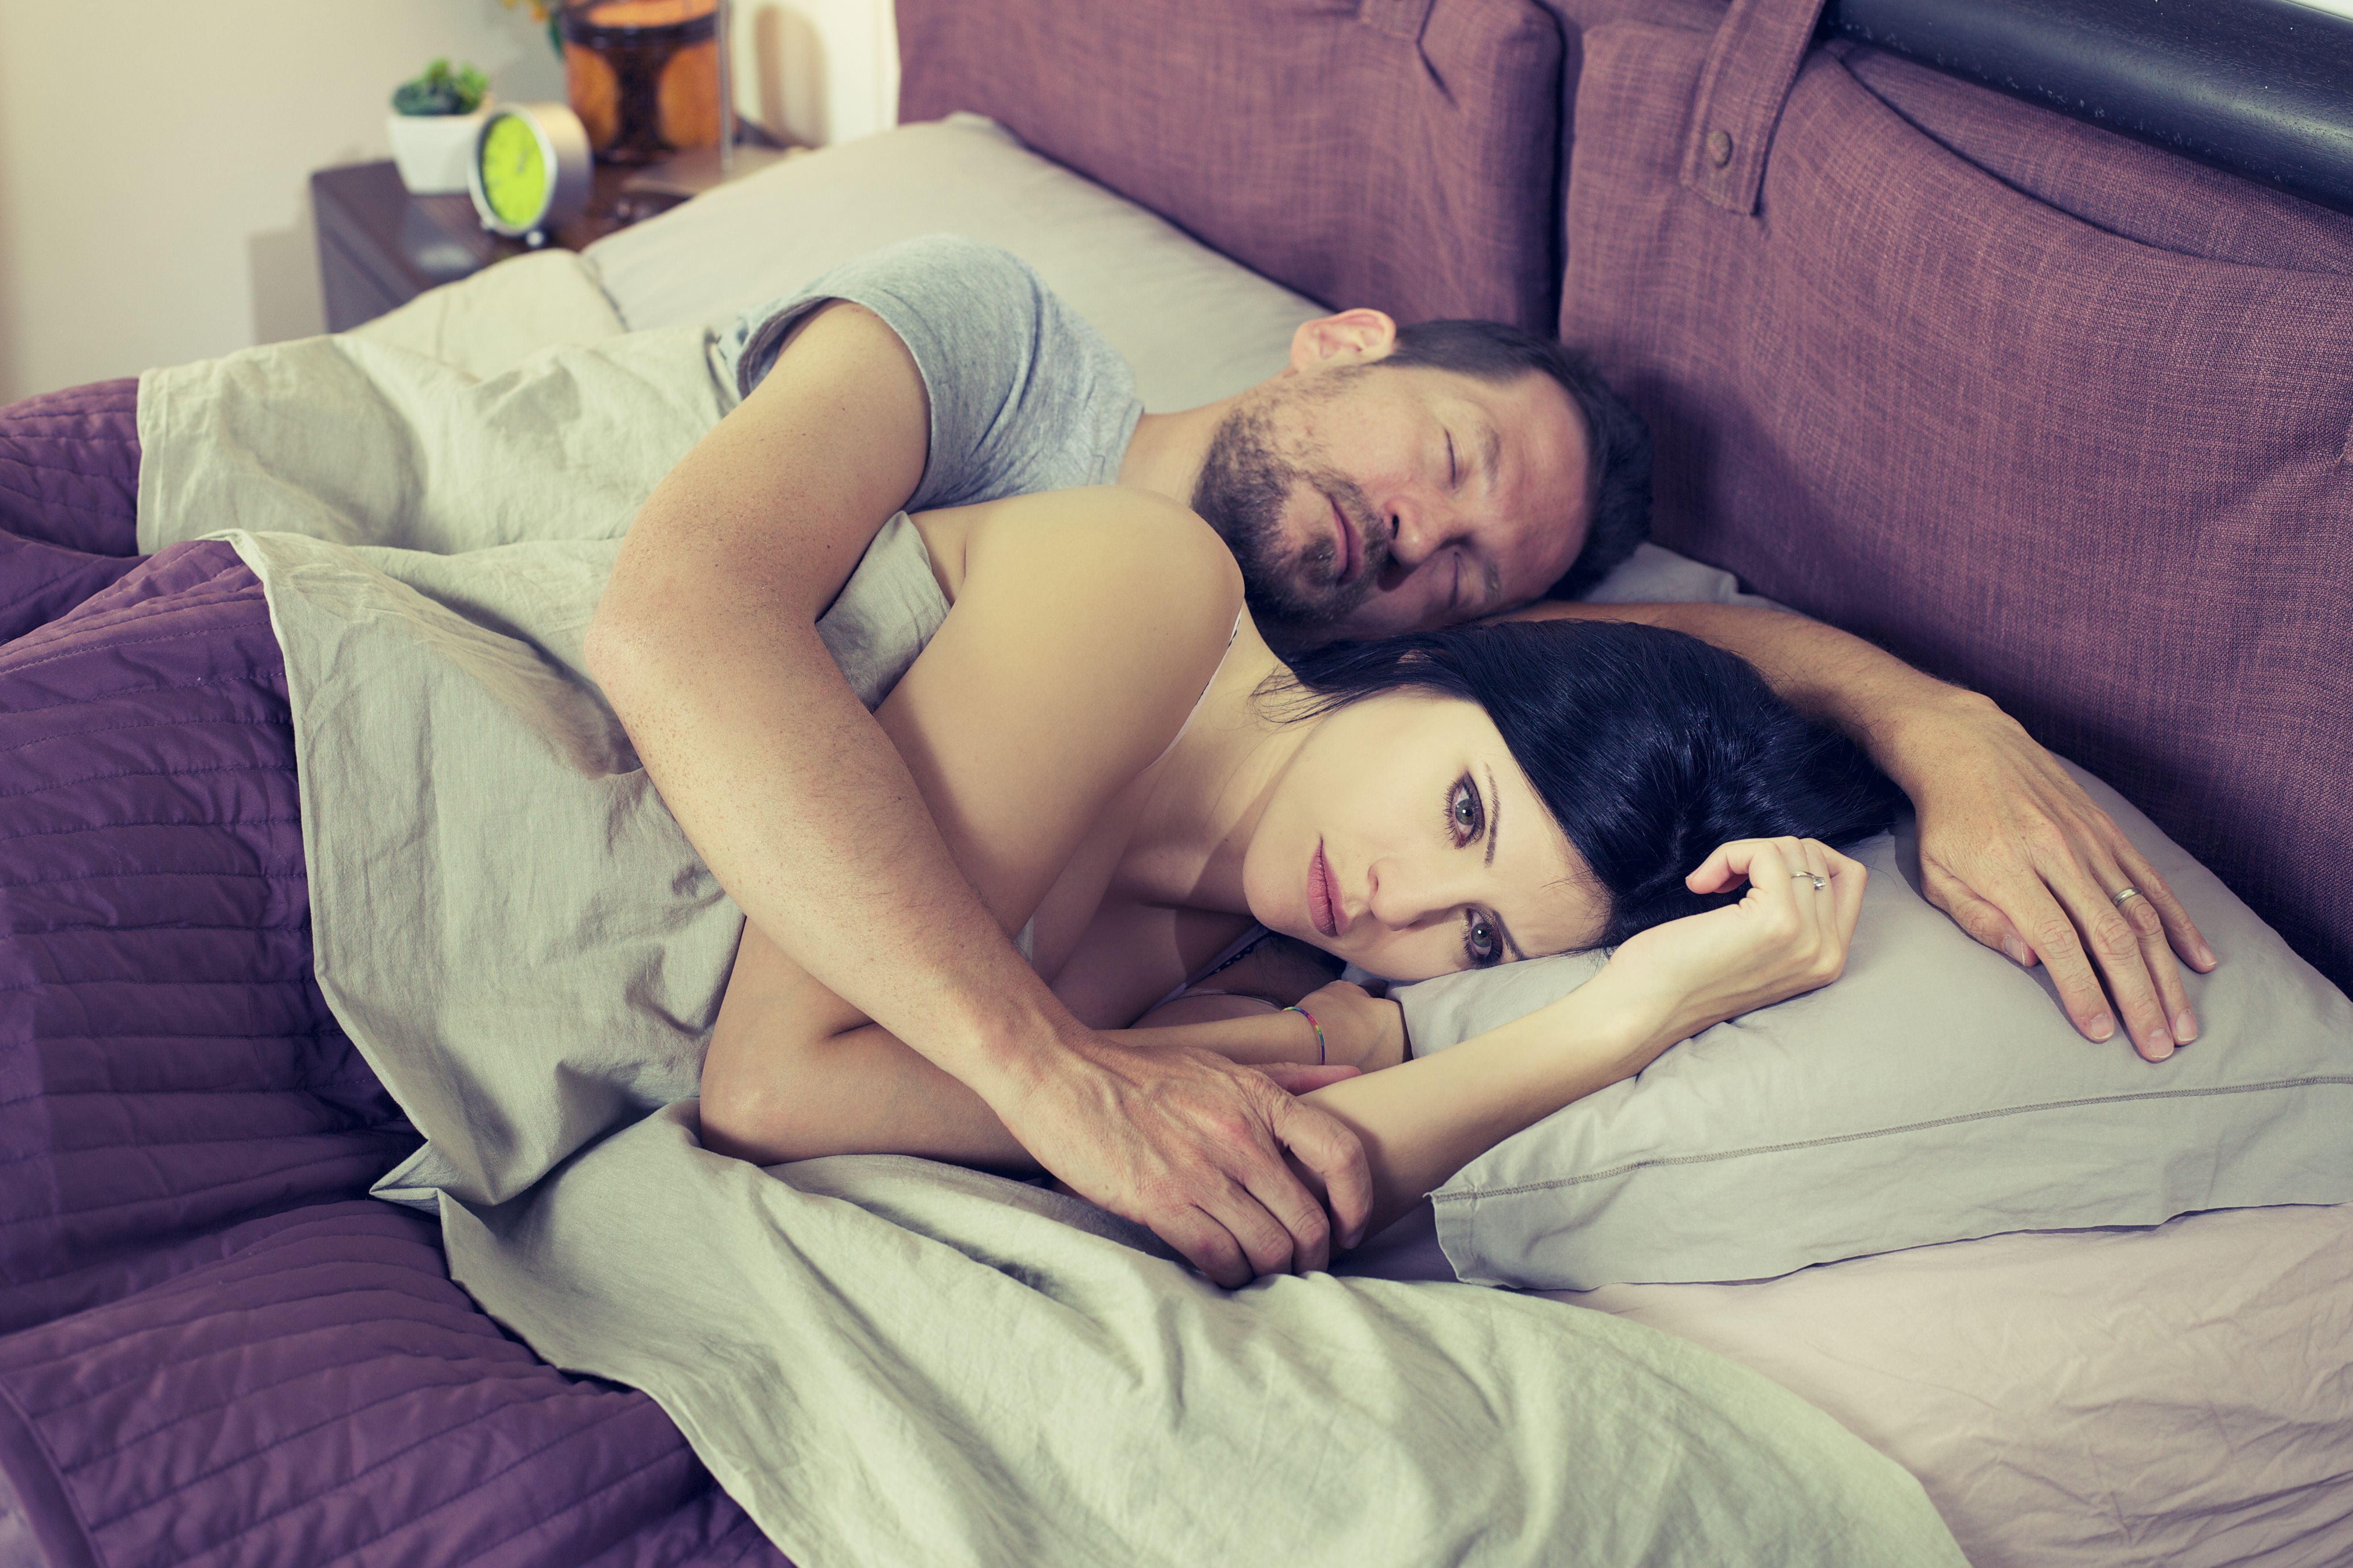 A woman looks worried while her husband sleeps beside her. | Source: Shutterstock